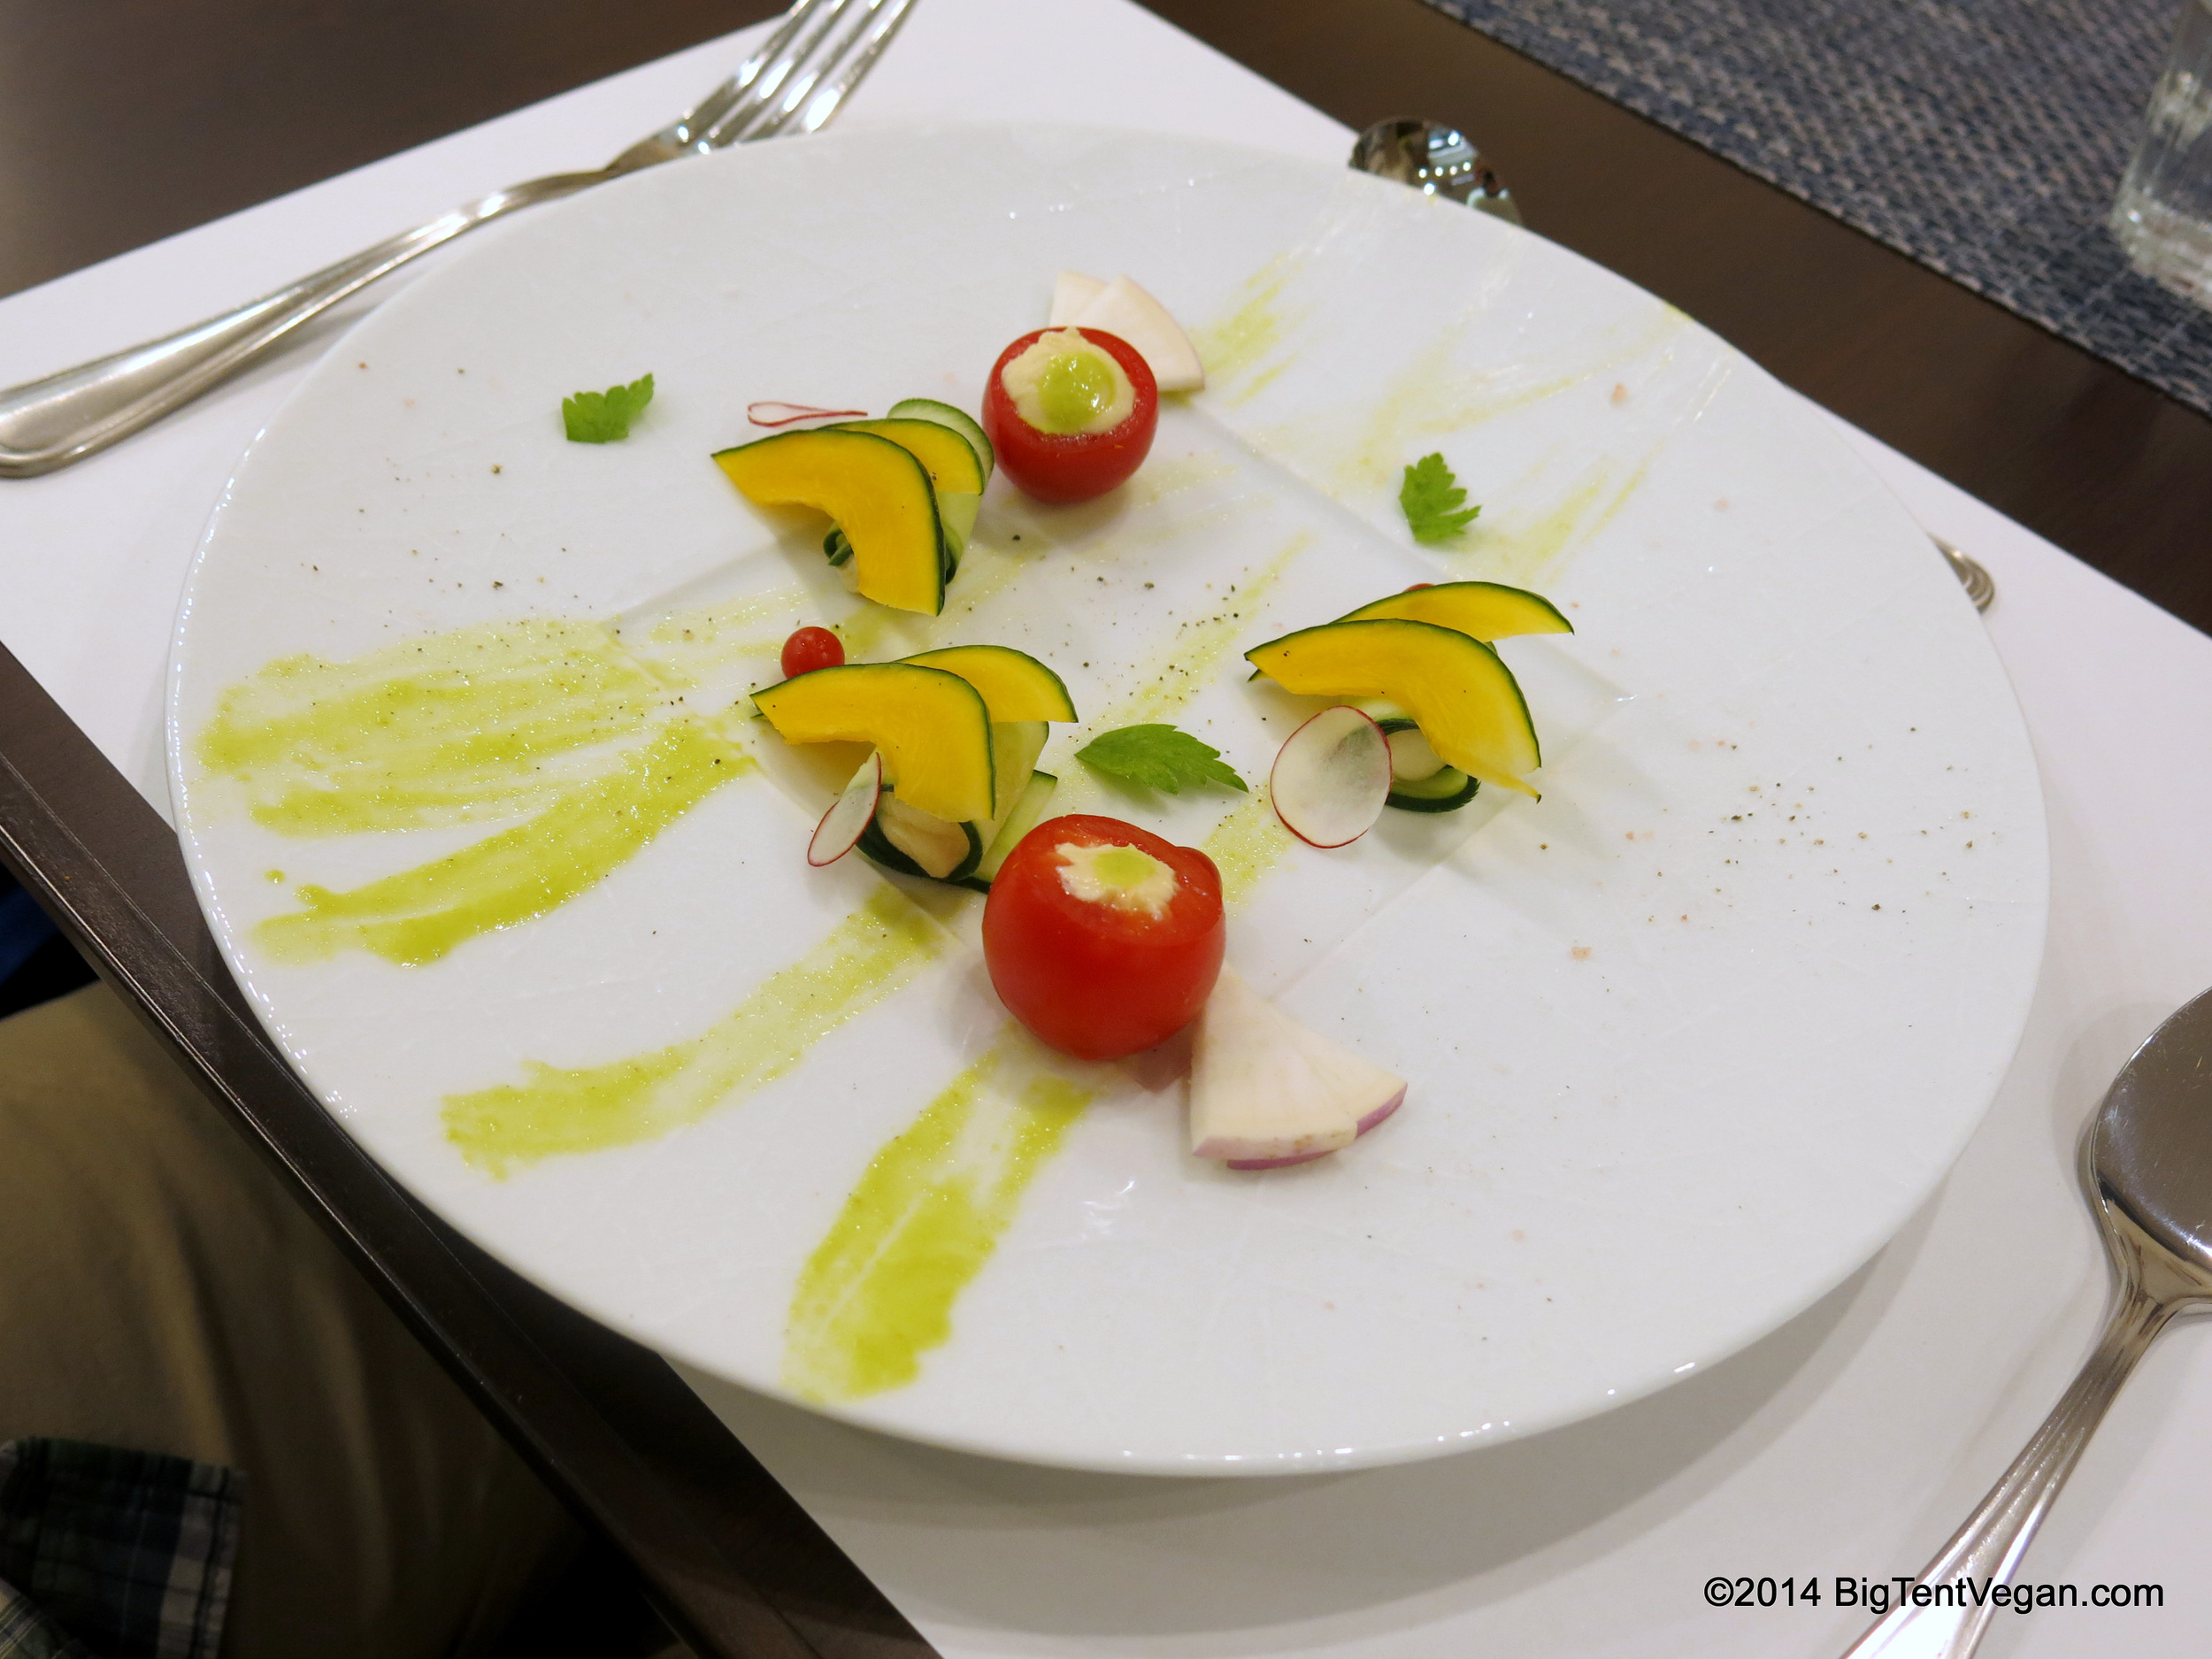 Vegan Cheese Appetizer (from set dinner menu) with Assorted Vegetables